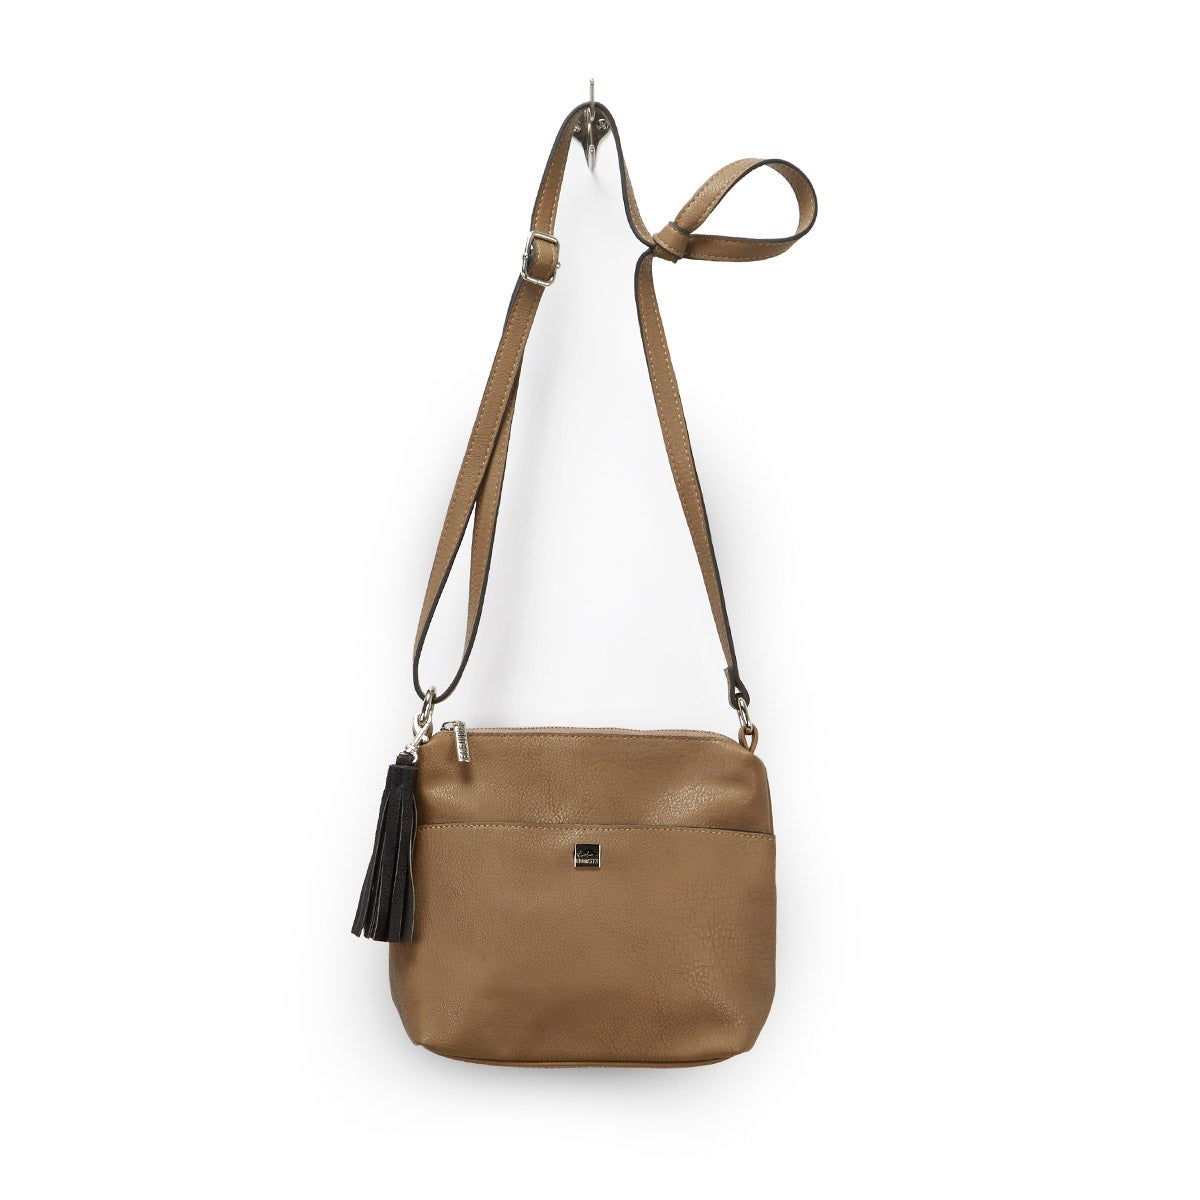 Lds taupe tassel detail cross body bag